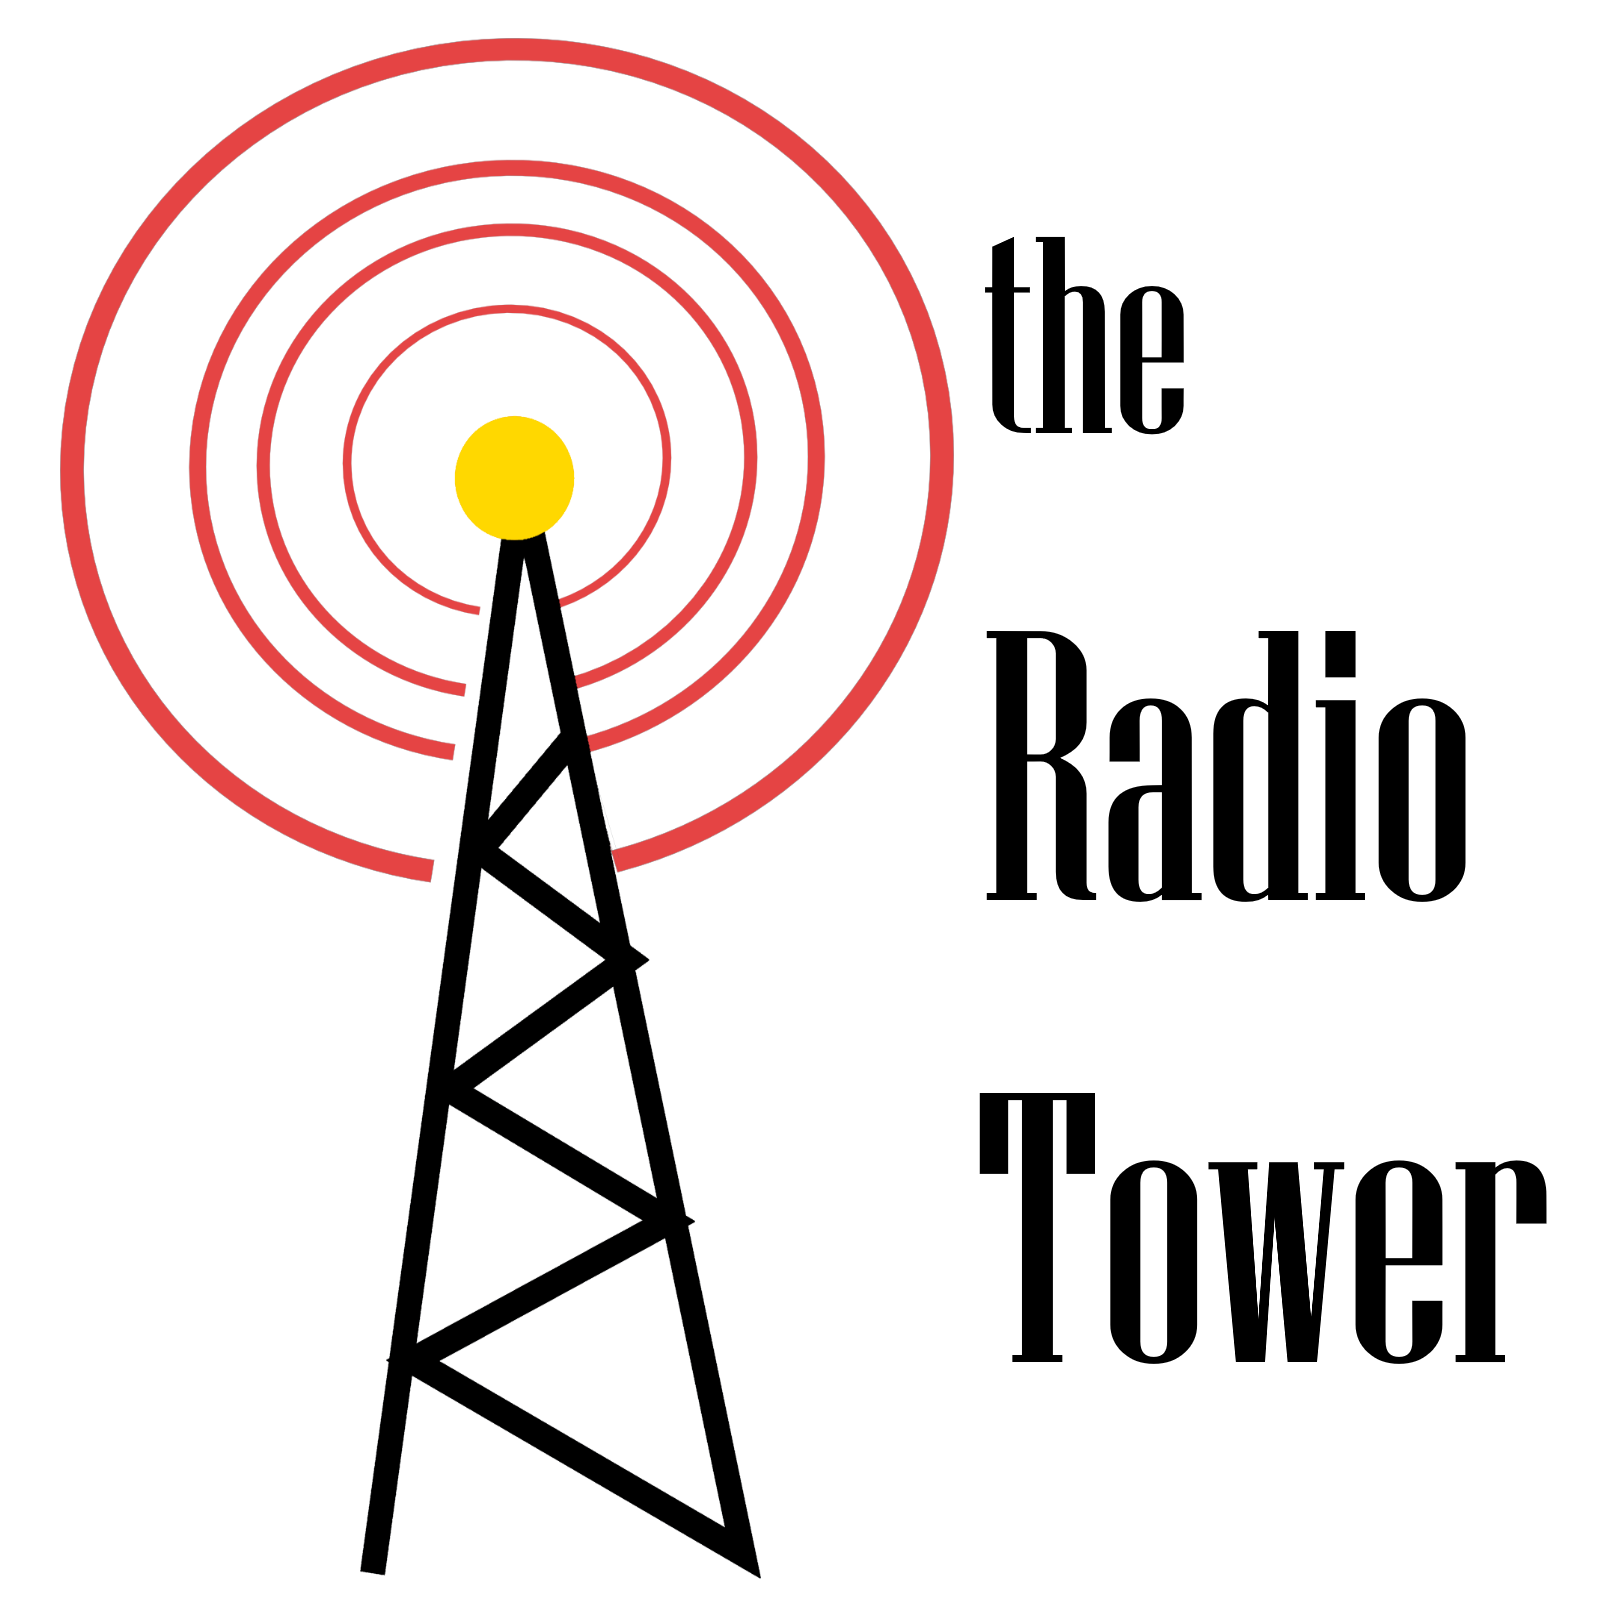 Radio Tower #22: Cindy Clifford show art